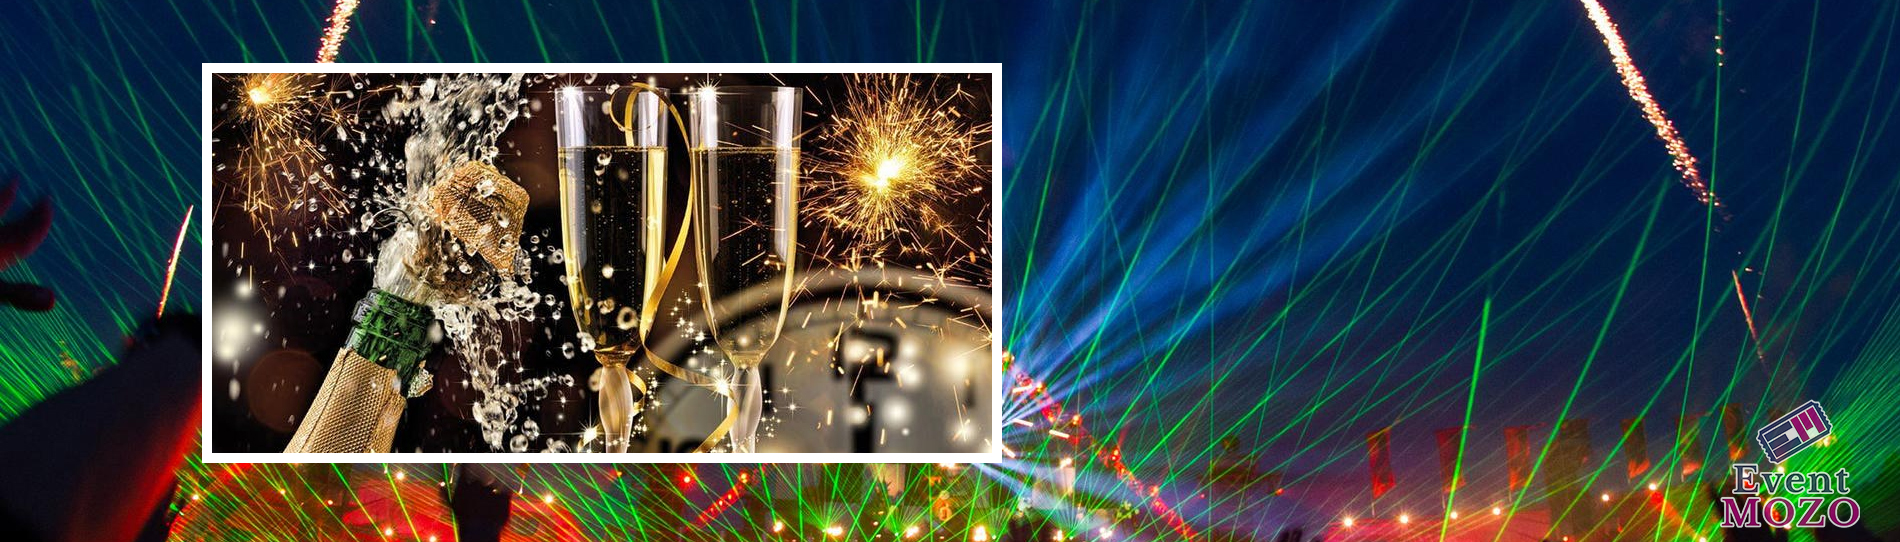 EventMozo New Year's Eve Party with Open Bar on the Waterfront!